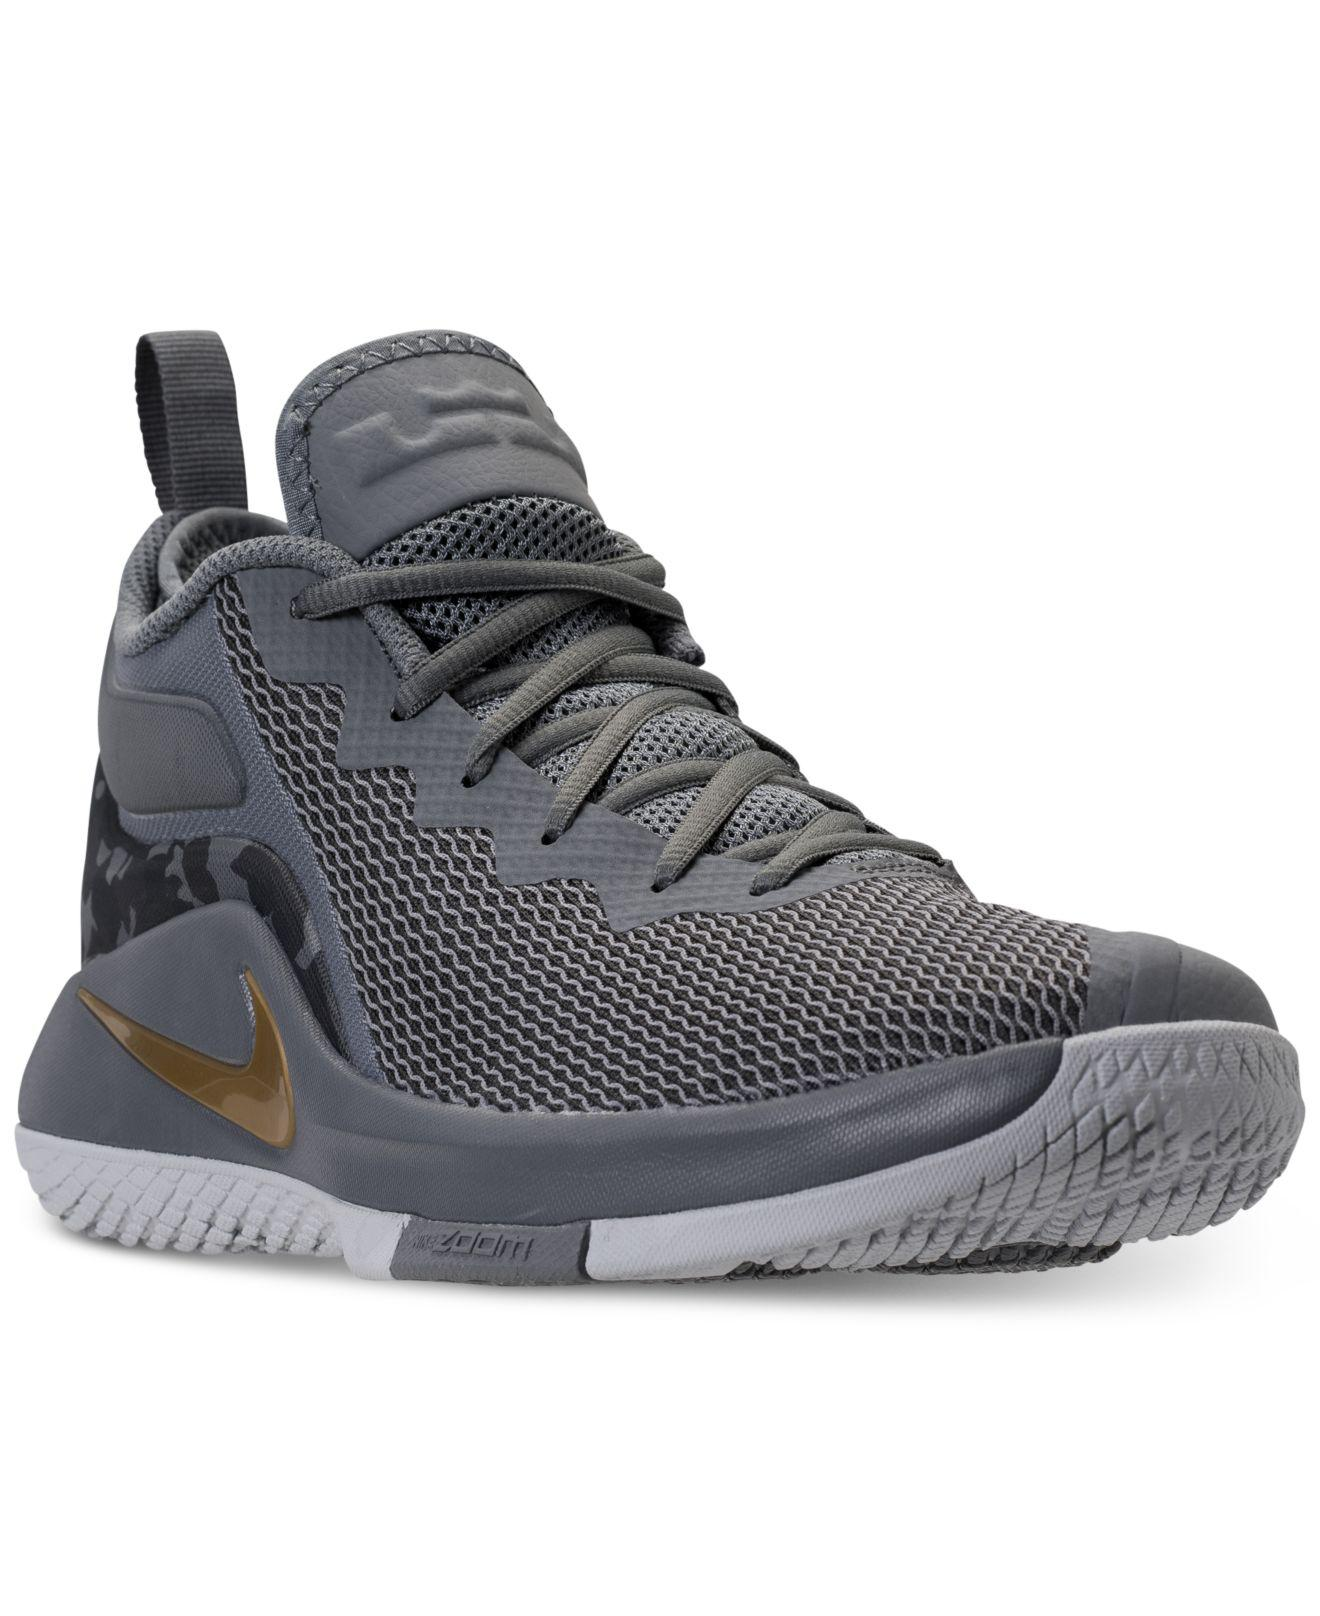 pretty nice 90576 660ff ... ii black basketball shoes for men online india best prices reviews  ni091sh24nduindfas 65704 b0792  shopping nike. mens gray lebron witness .  52a40 c6db1